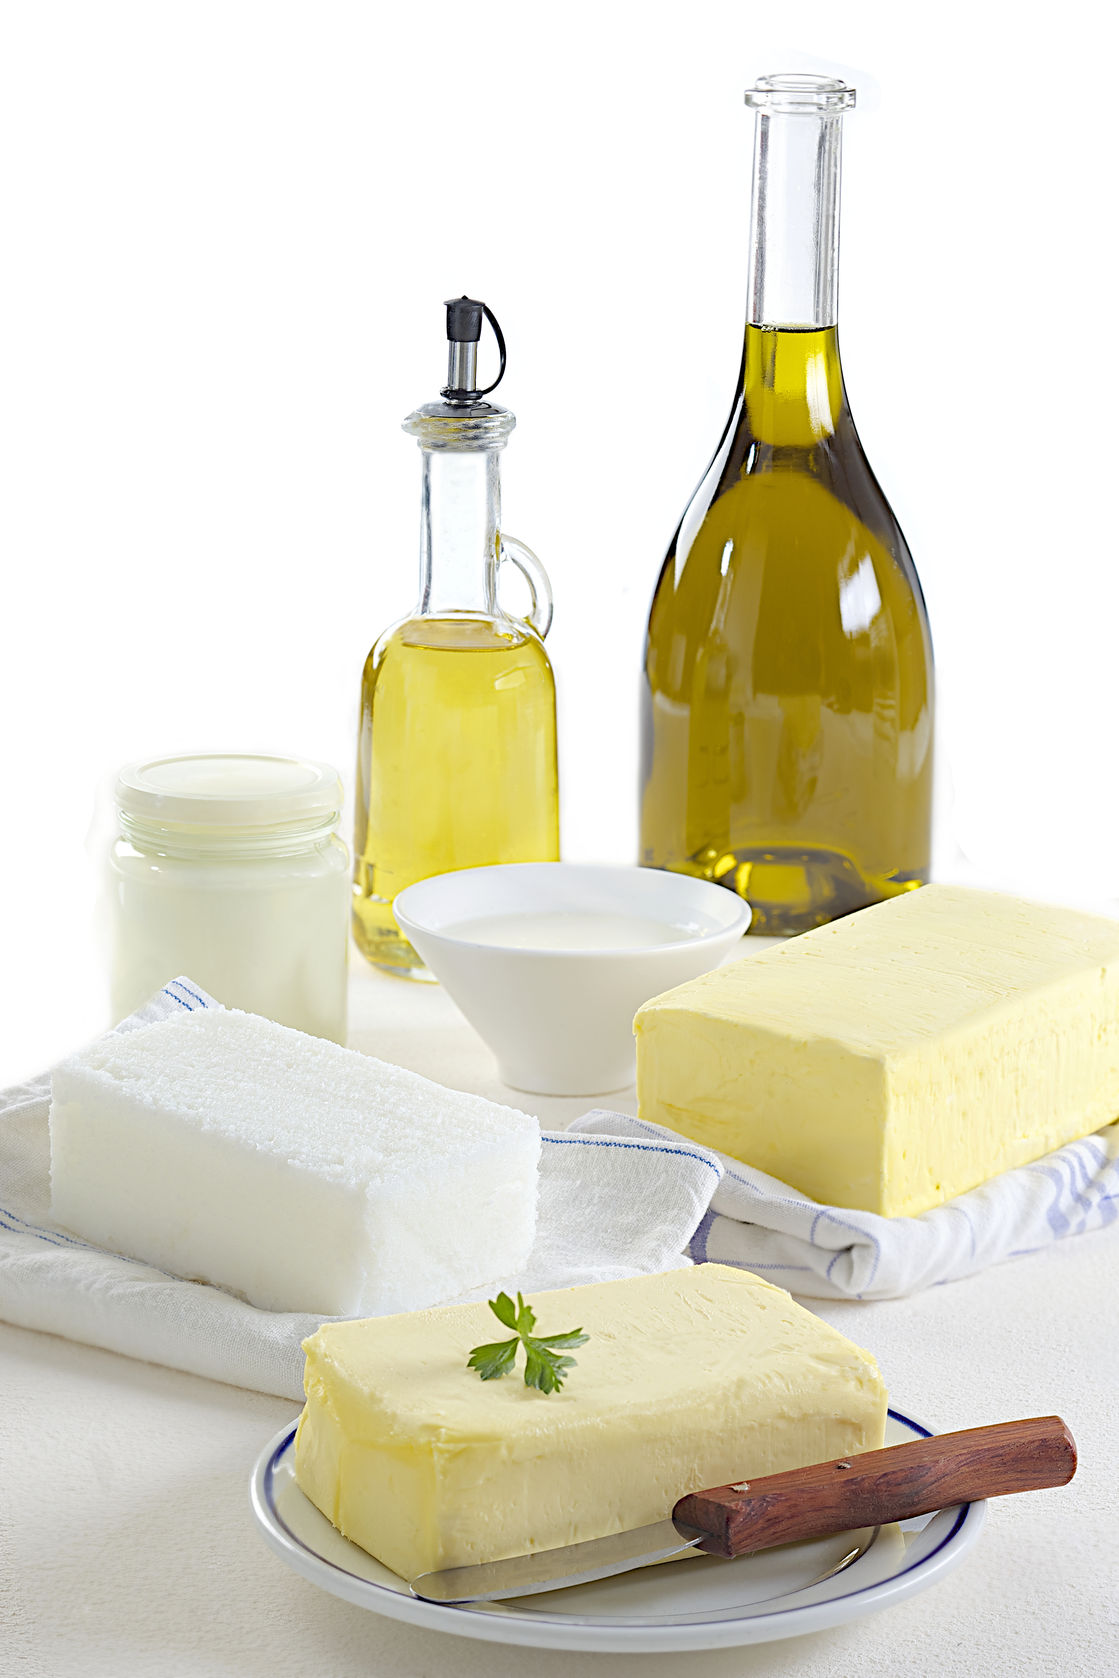 olive oil reduces risk of diabetes